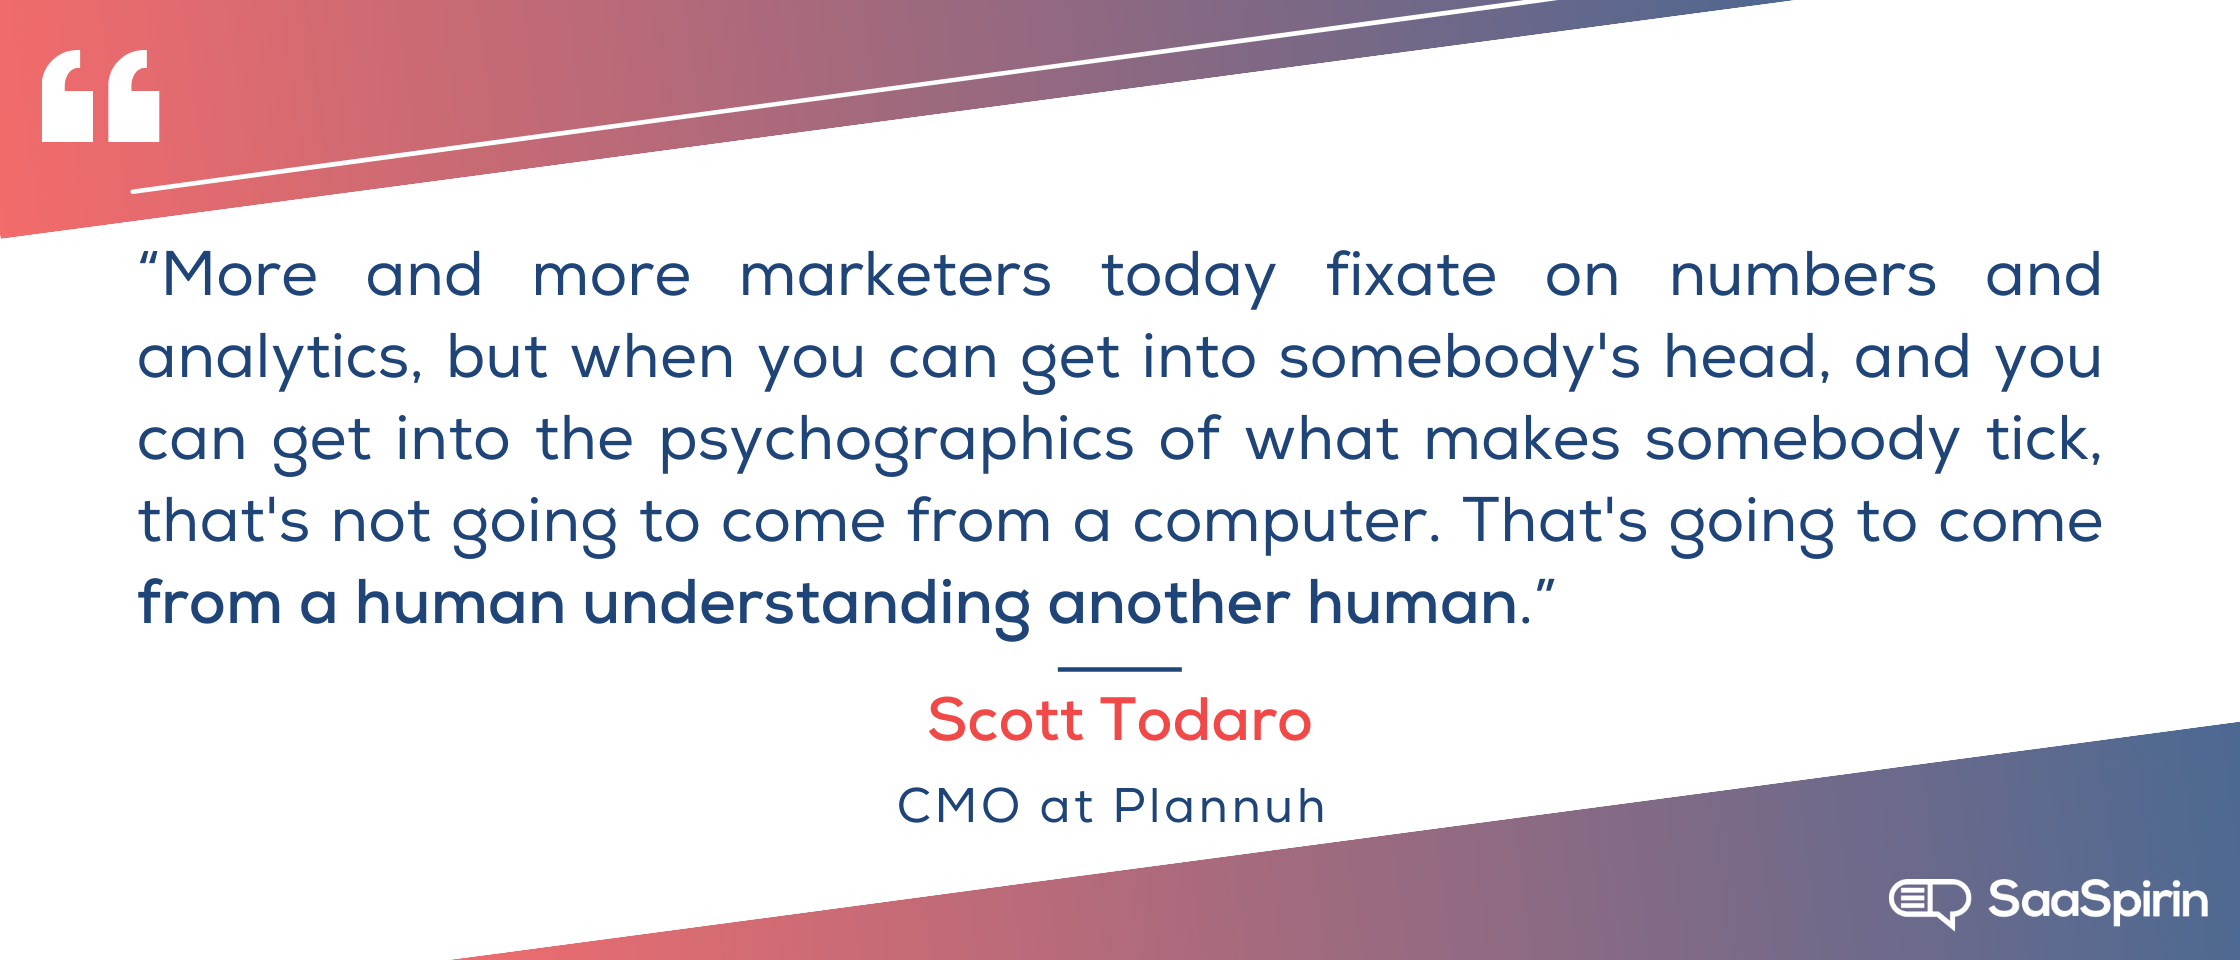 More-and-more-marketers-today-fixate-on-numbers-and-analytics-but-when-you-can-get-into-somebodys -head-and-you-can get-into-the-psychographics-of-what-makes-somebody-tick-thats-not-going-to-come-from-a-compu.png